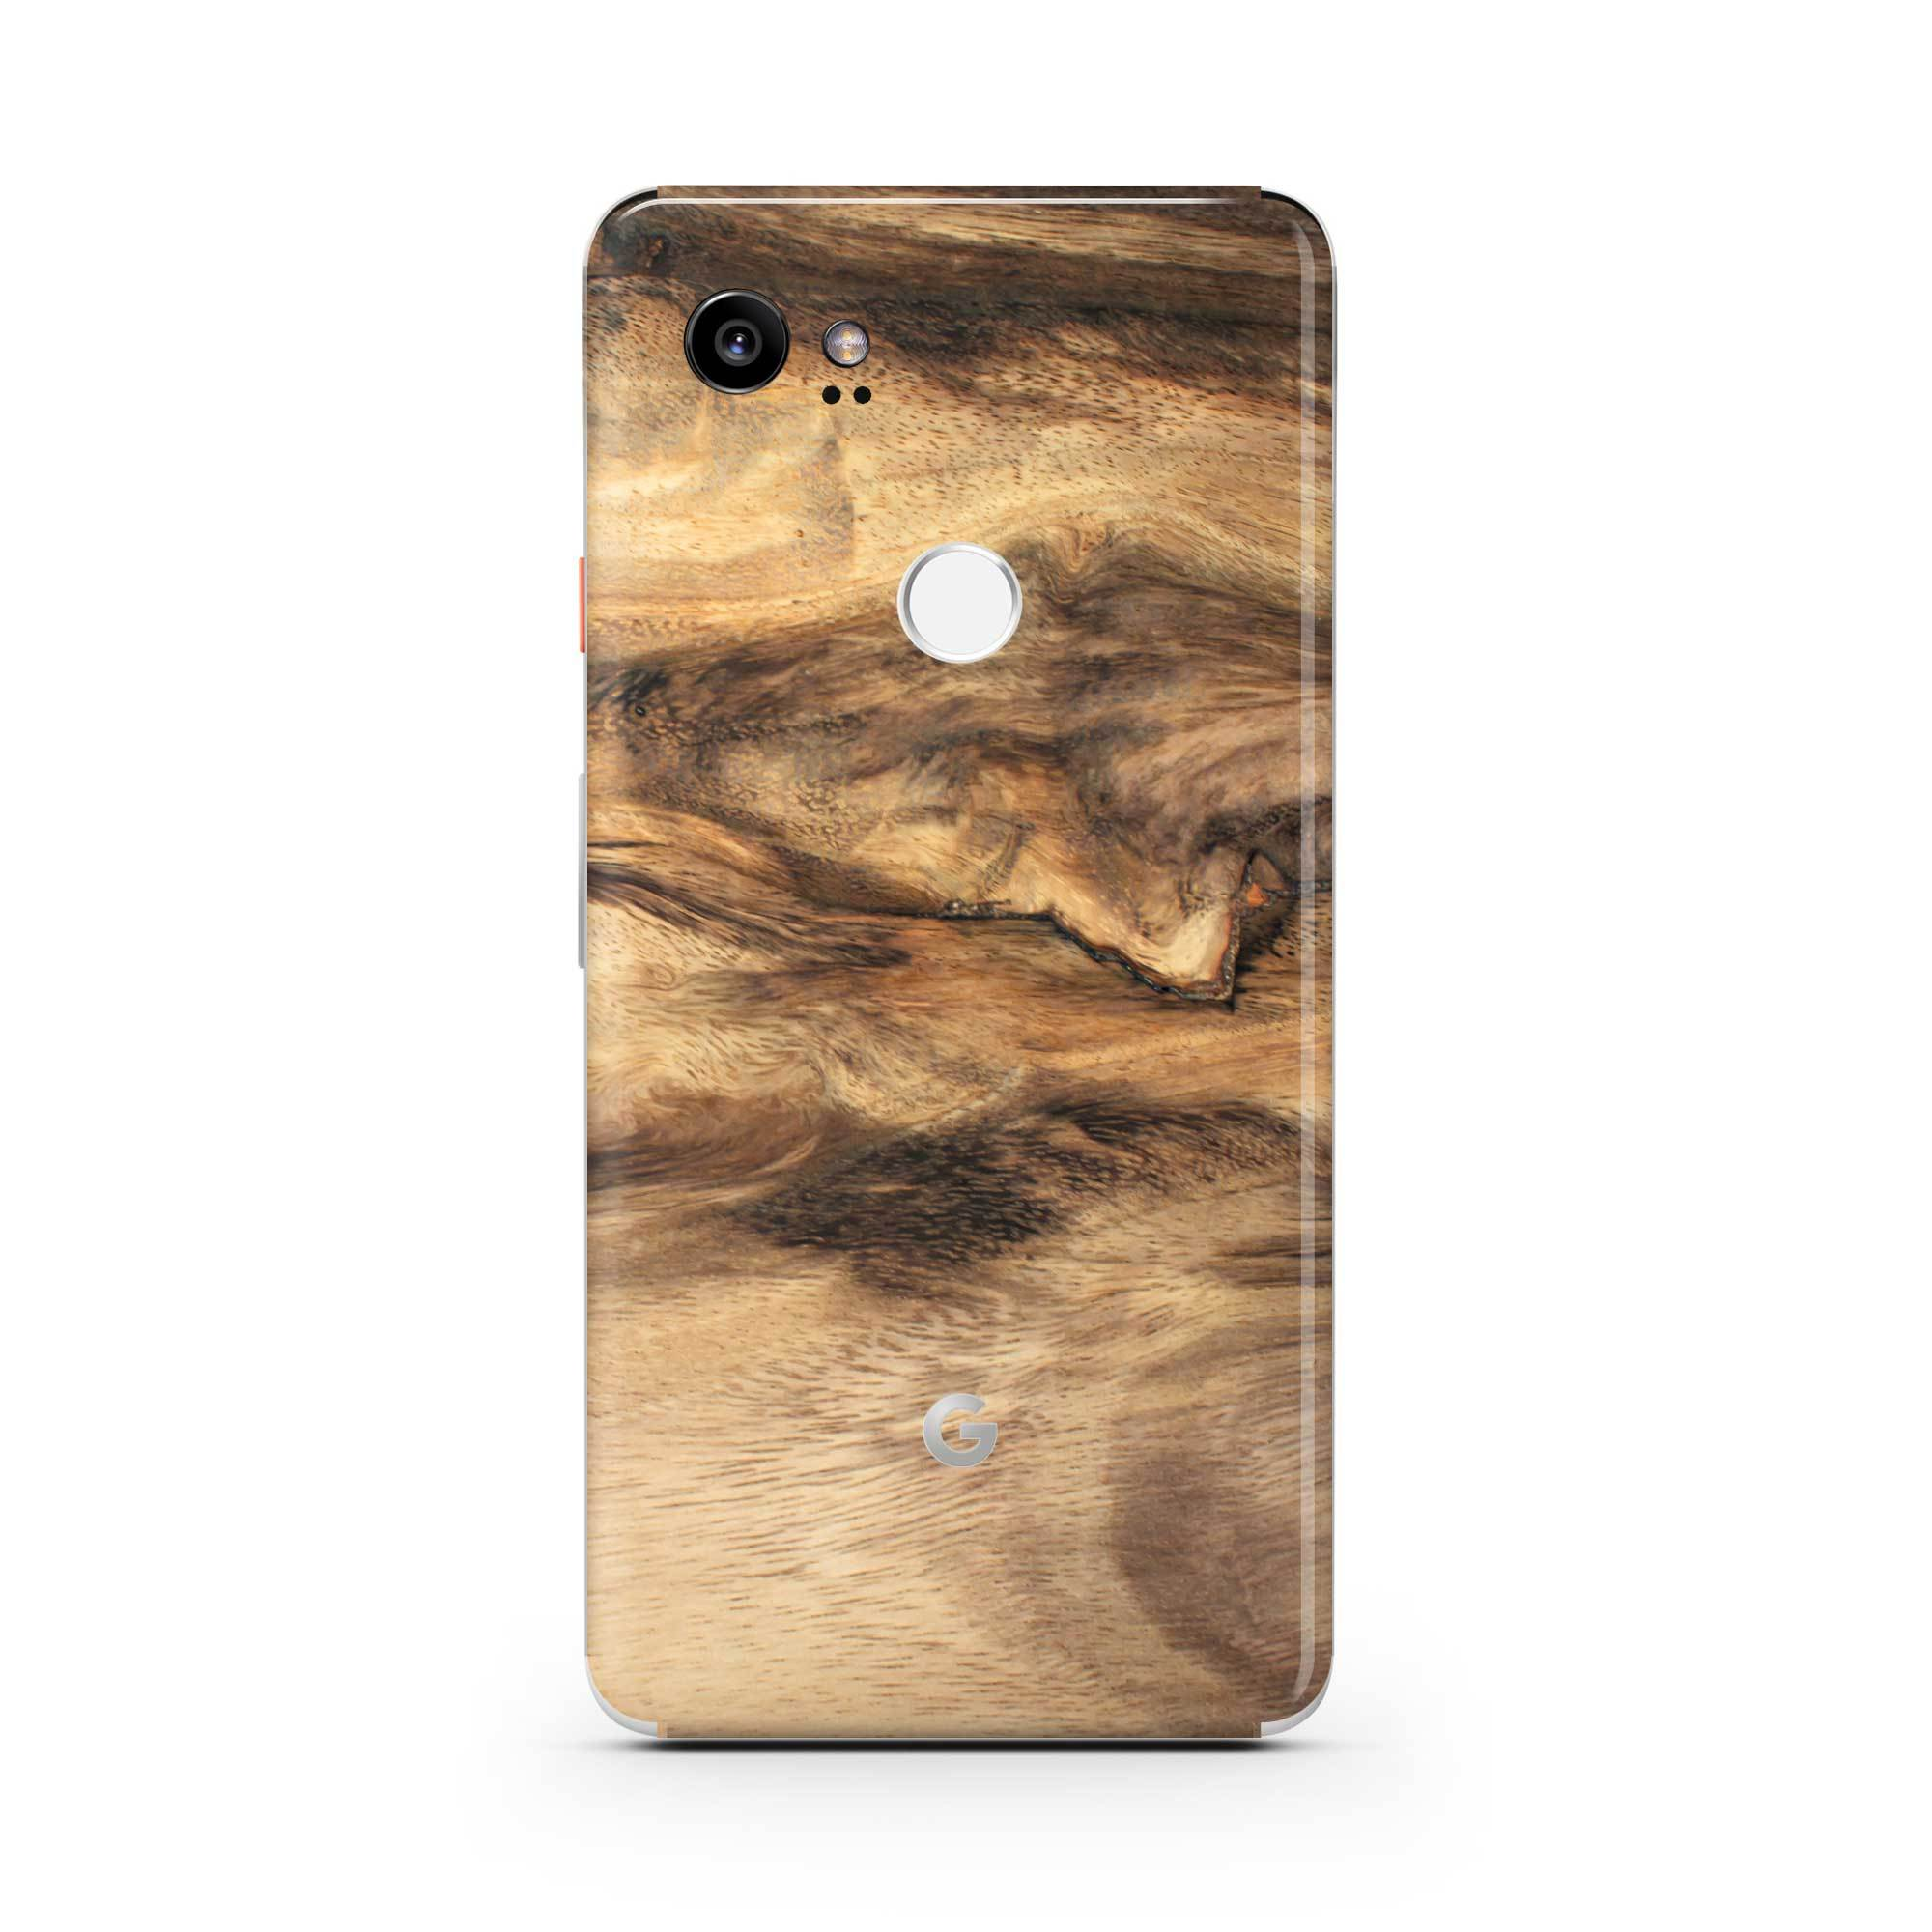 Wood Pixel 3a XL Skin + Case